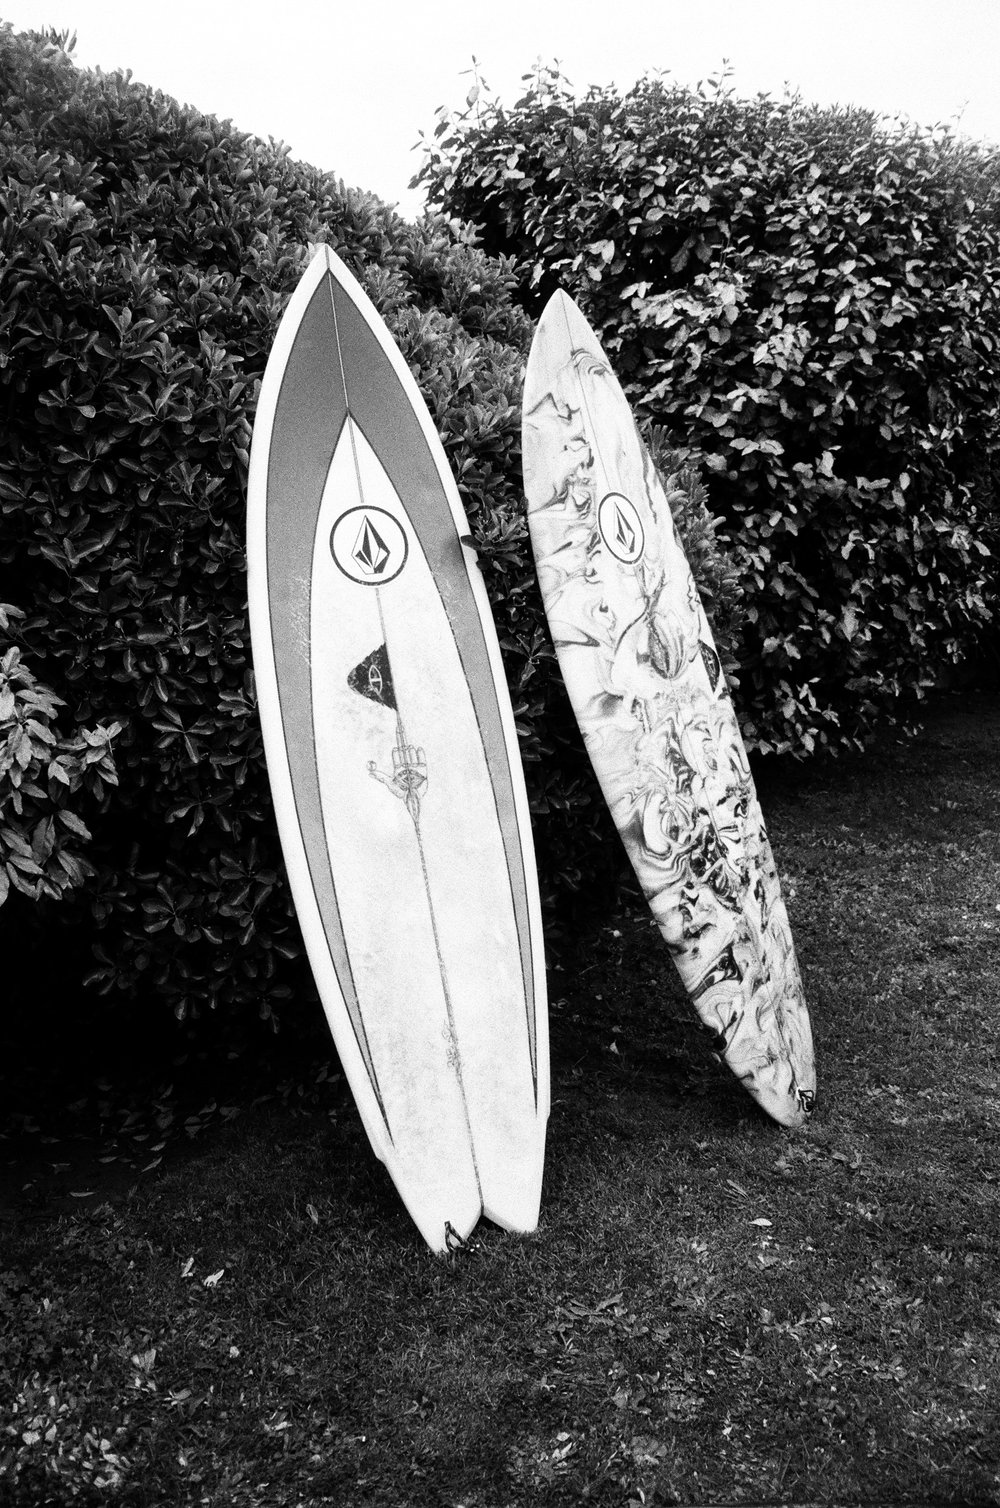 Ryan Burch Yentl Touboul Photography Website.JPG